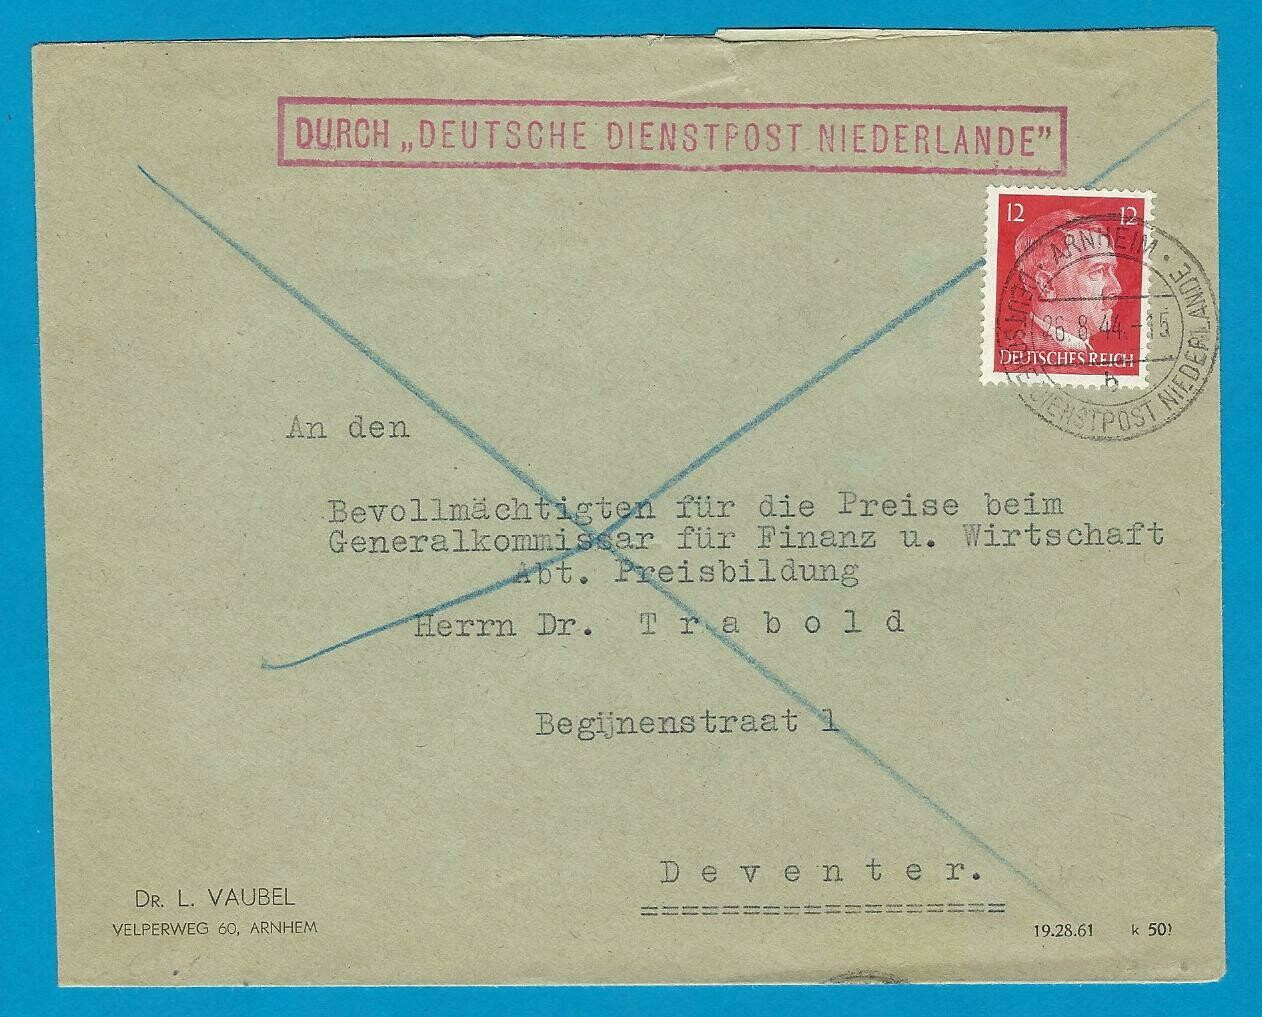 NEDERLAND brief 1944 Arnhem Durch Deutsche Dienstpost